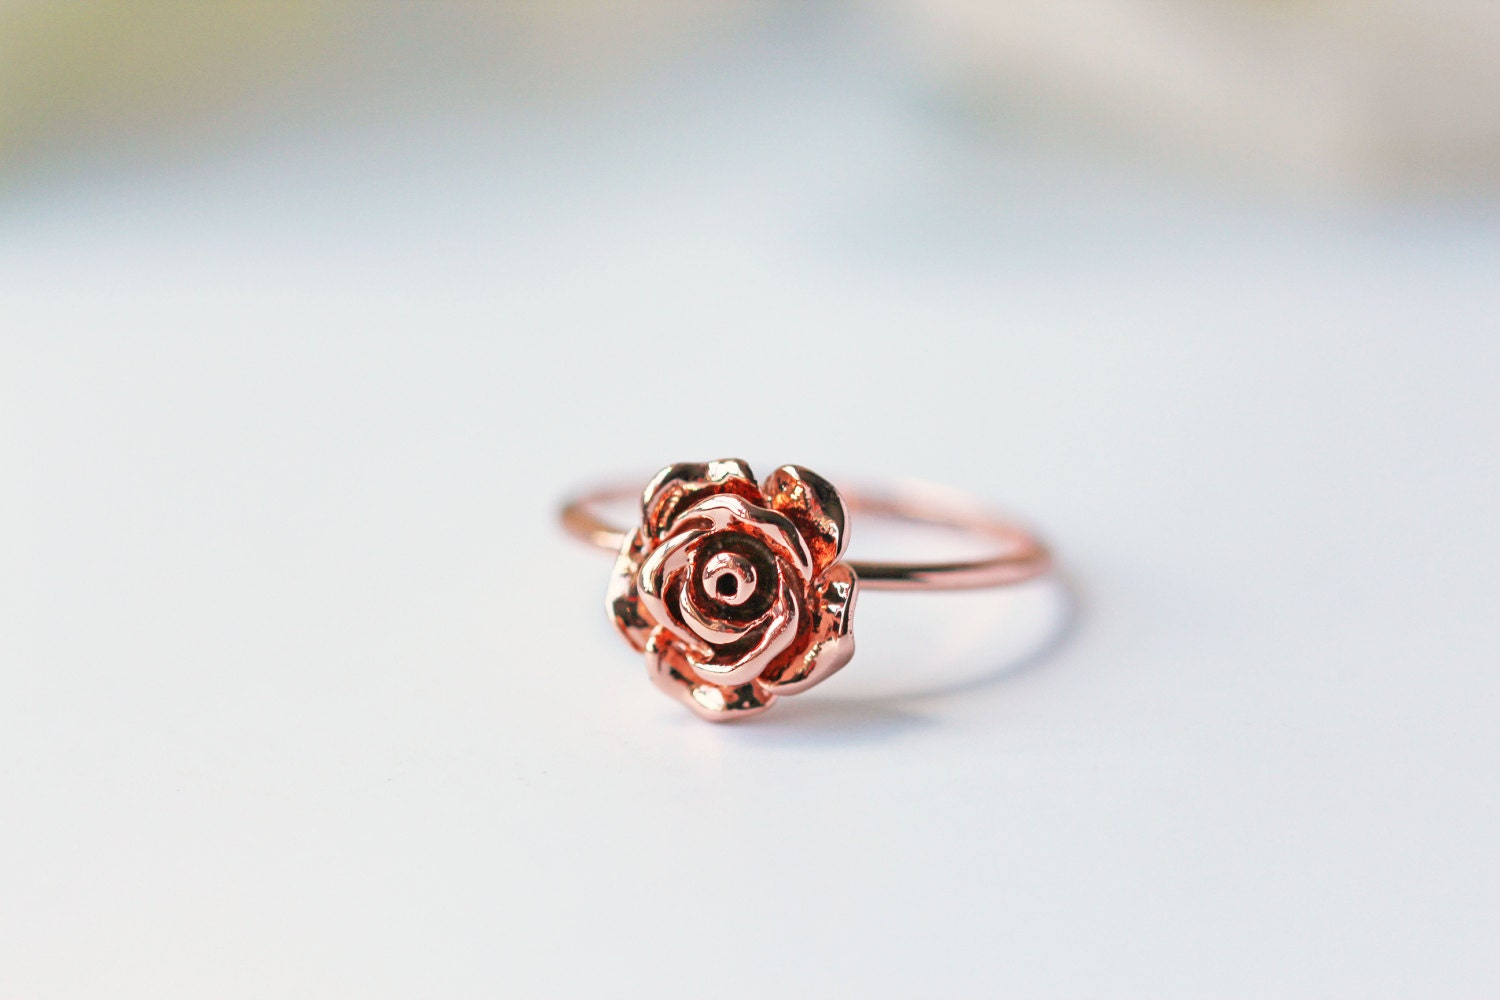 Rose Gold Ring Size 5 3/4 Rose Pink Gold Modern Dainty Simple